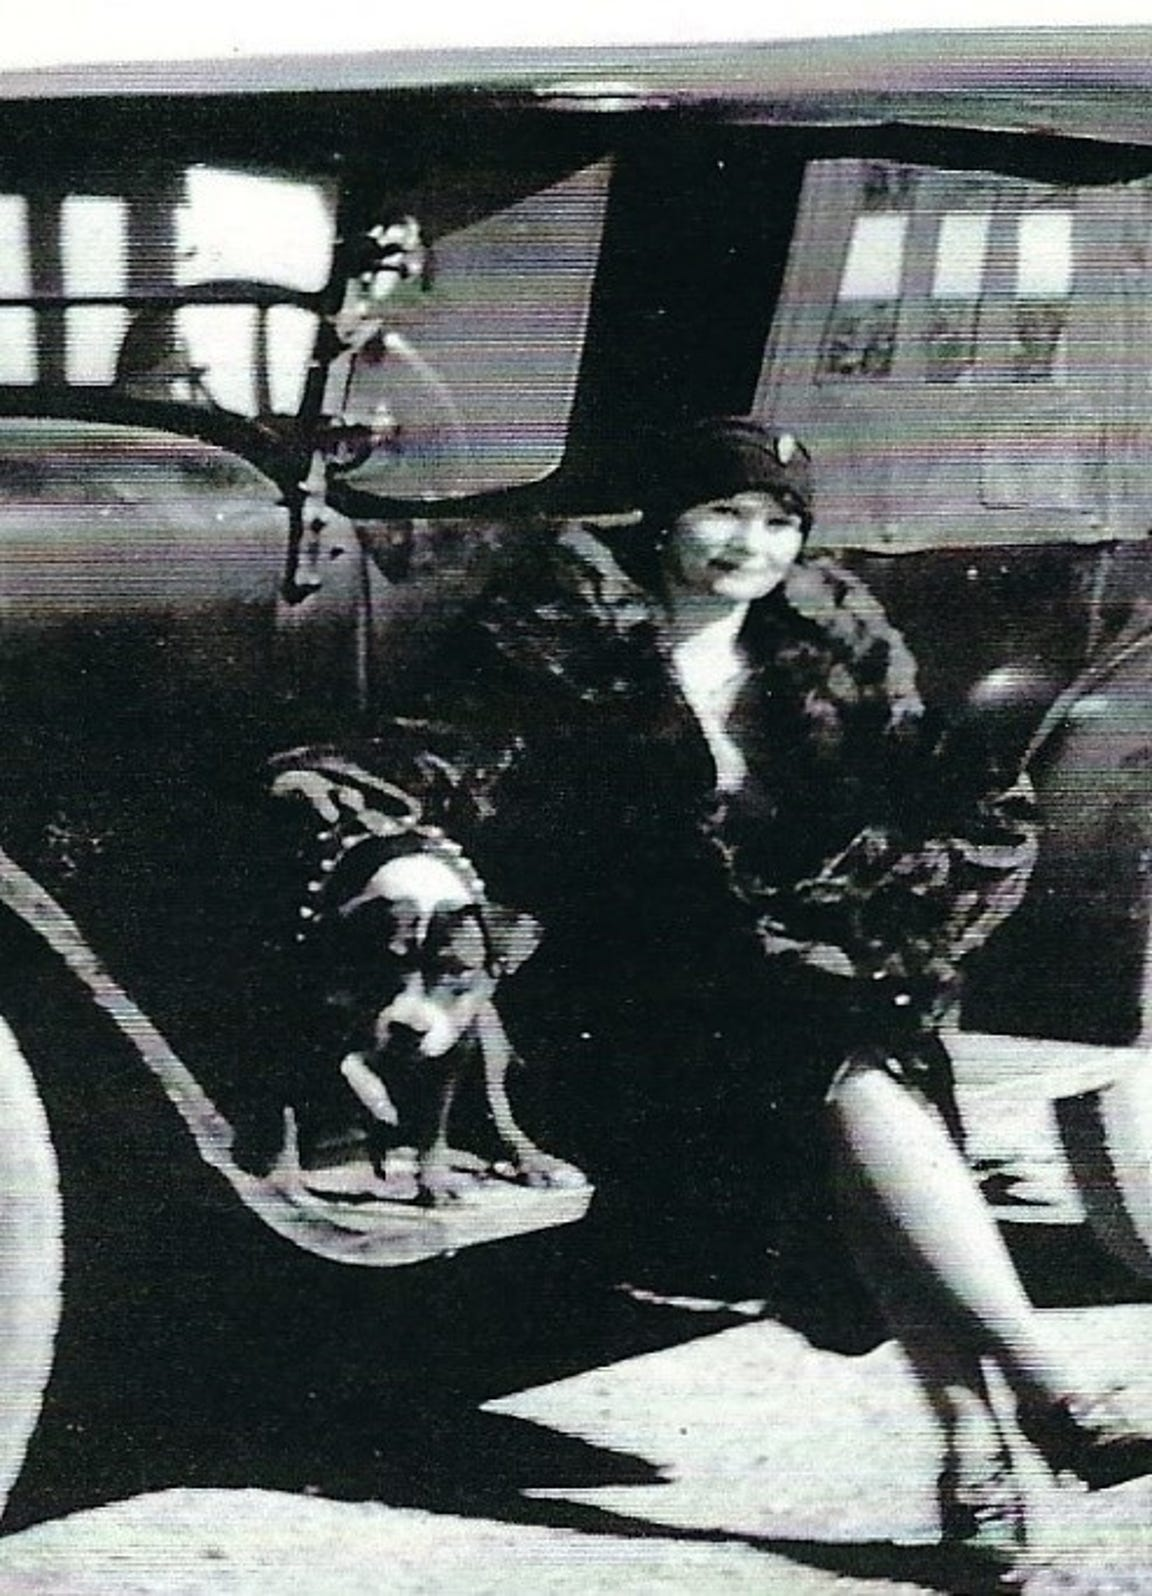 Glenda Poling's paternal grandmother, Gertrude Maude Fulstone. Pictured in this undated photo with her guard dog Babe. She bears a striking resemblance to Sharon Elliott, the Hatbox Baby.